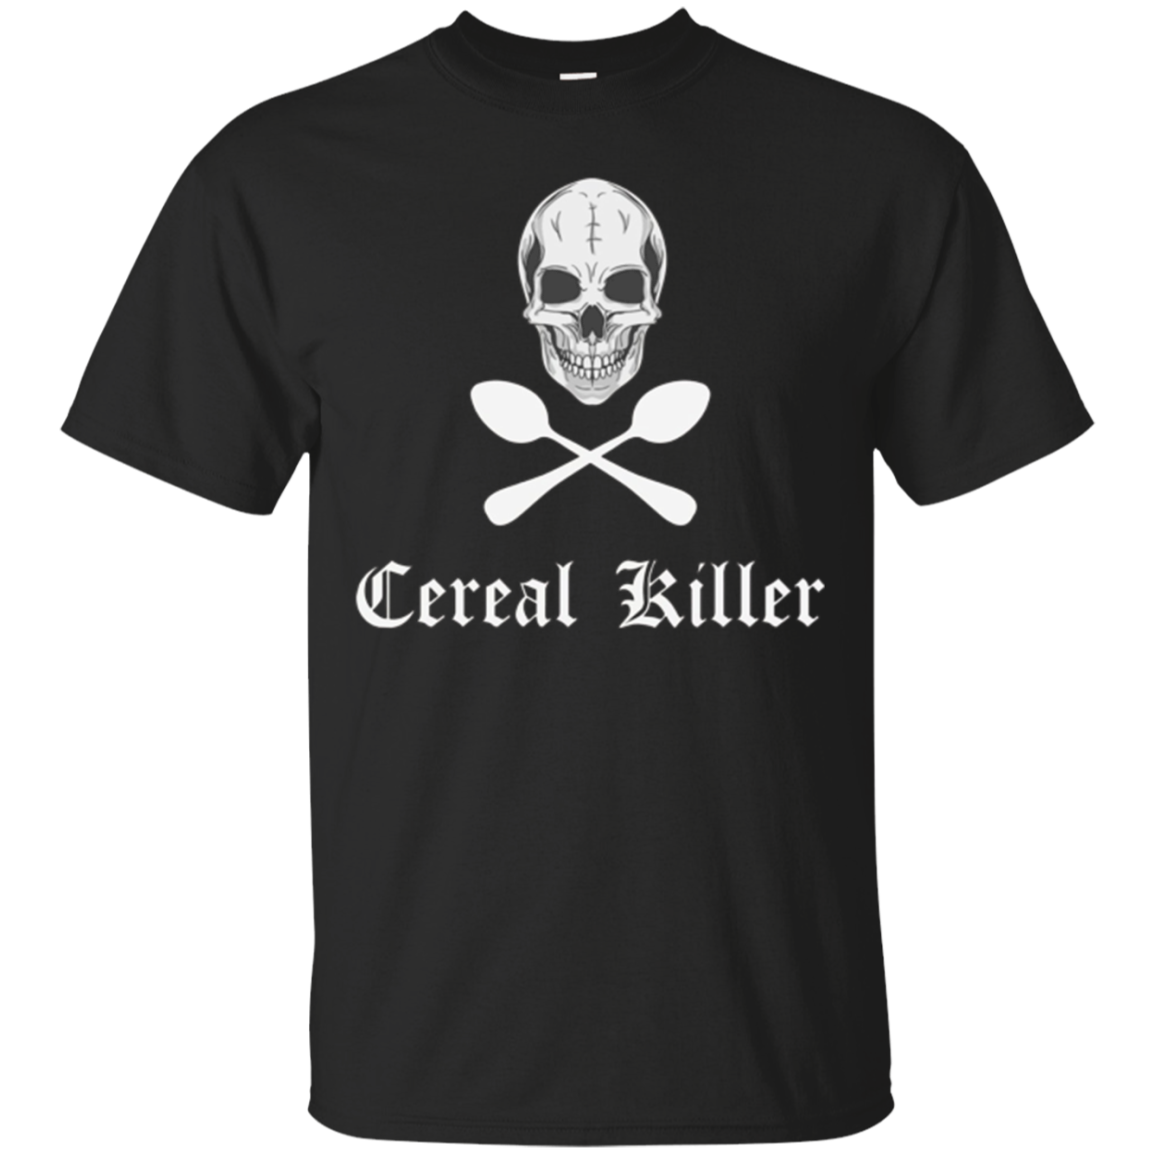 Cereal Killer Funny Serial Spoons Halloween Costume Shirt